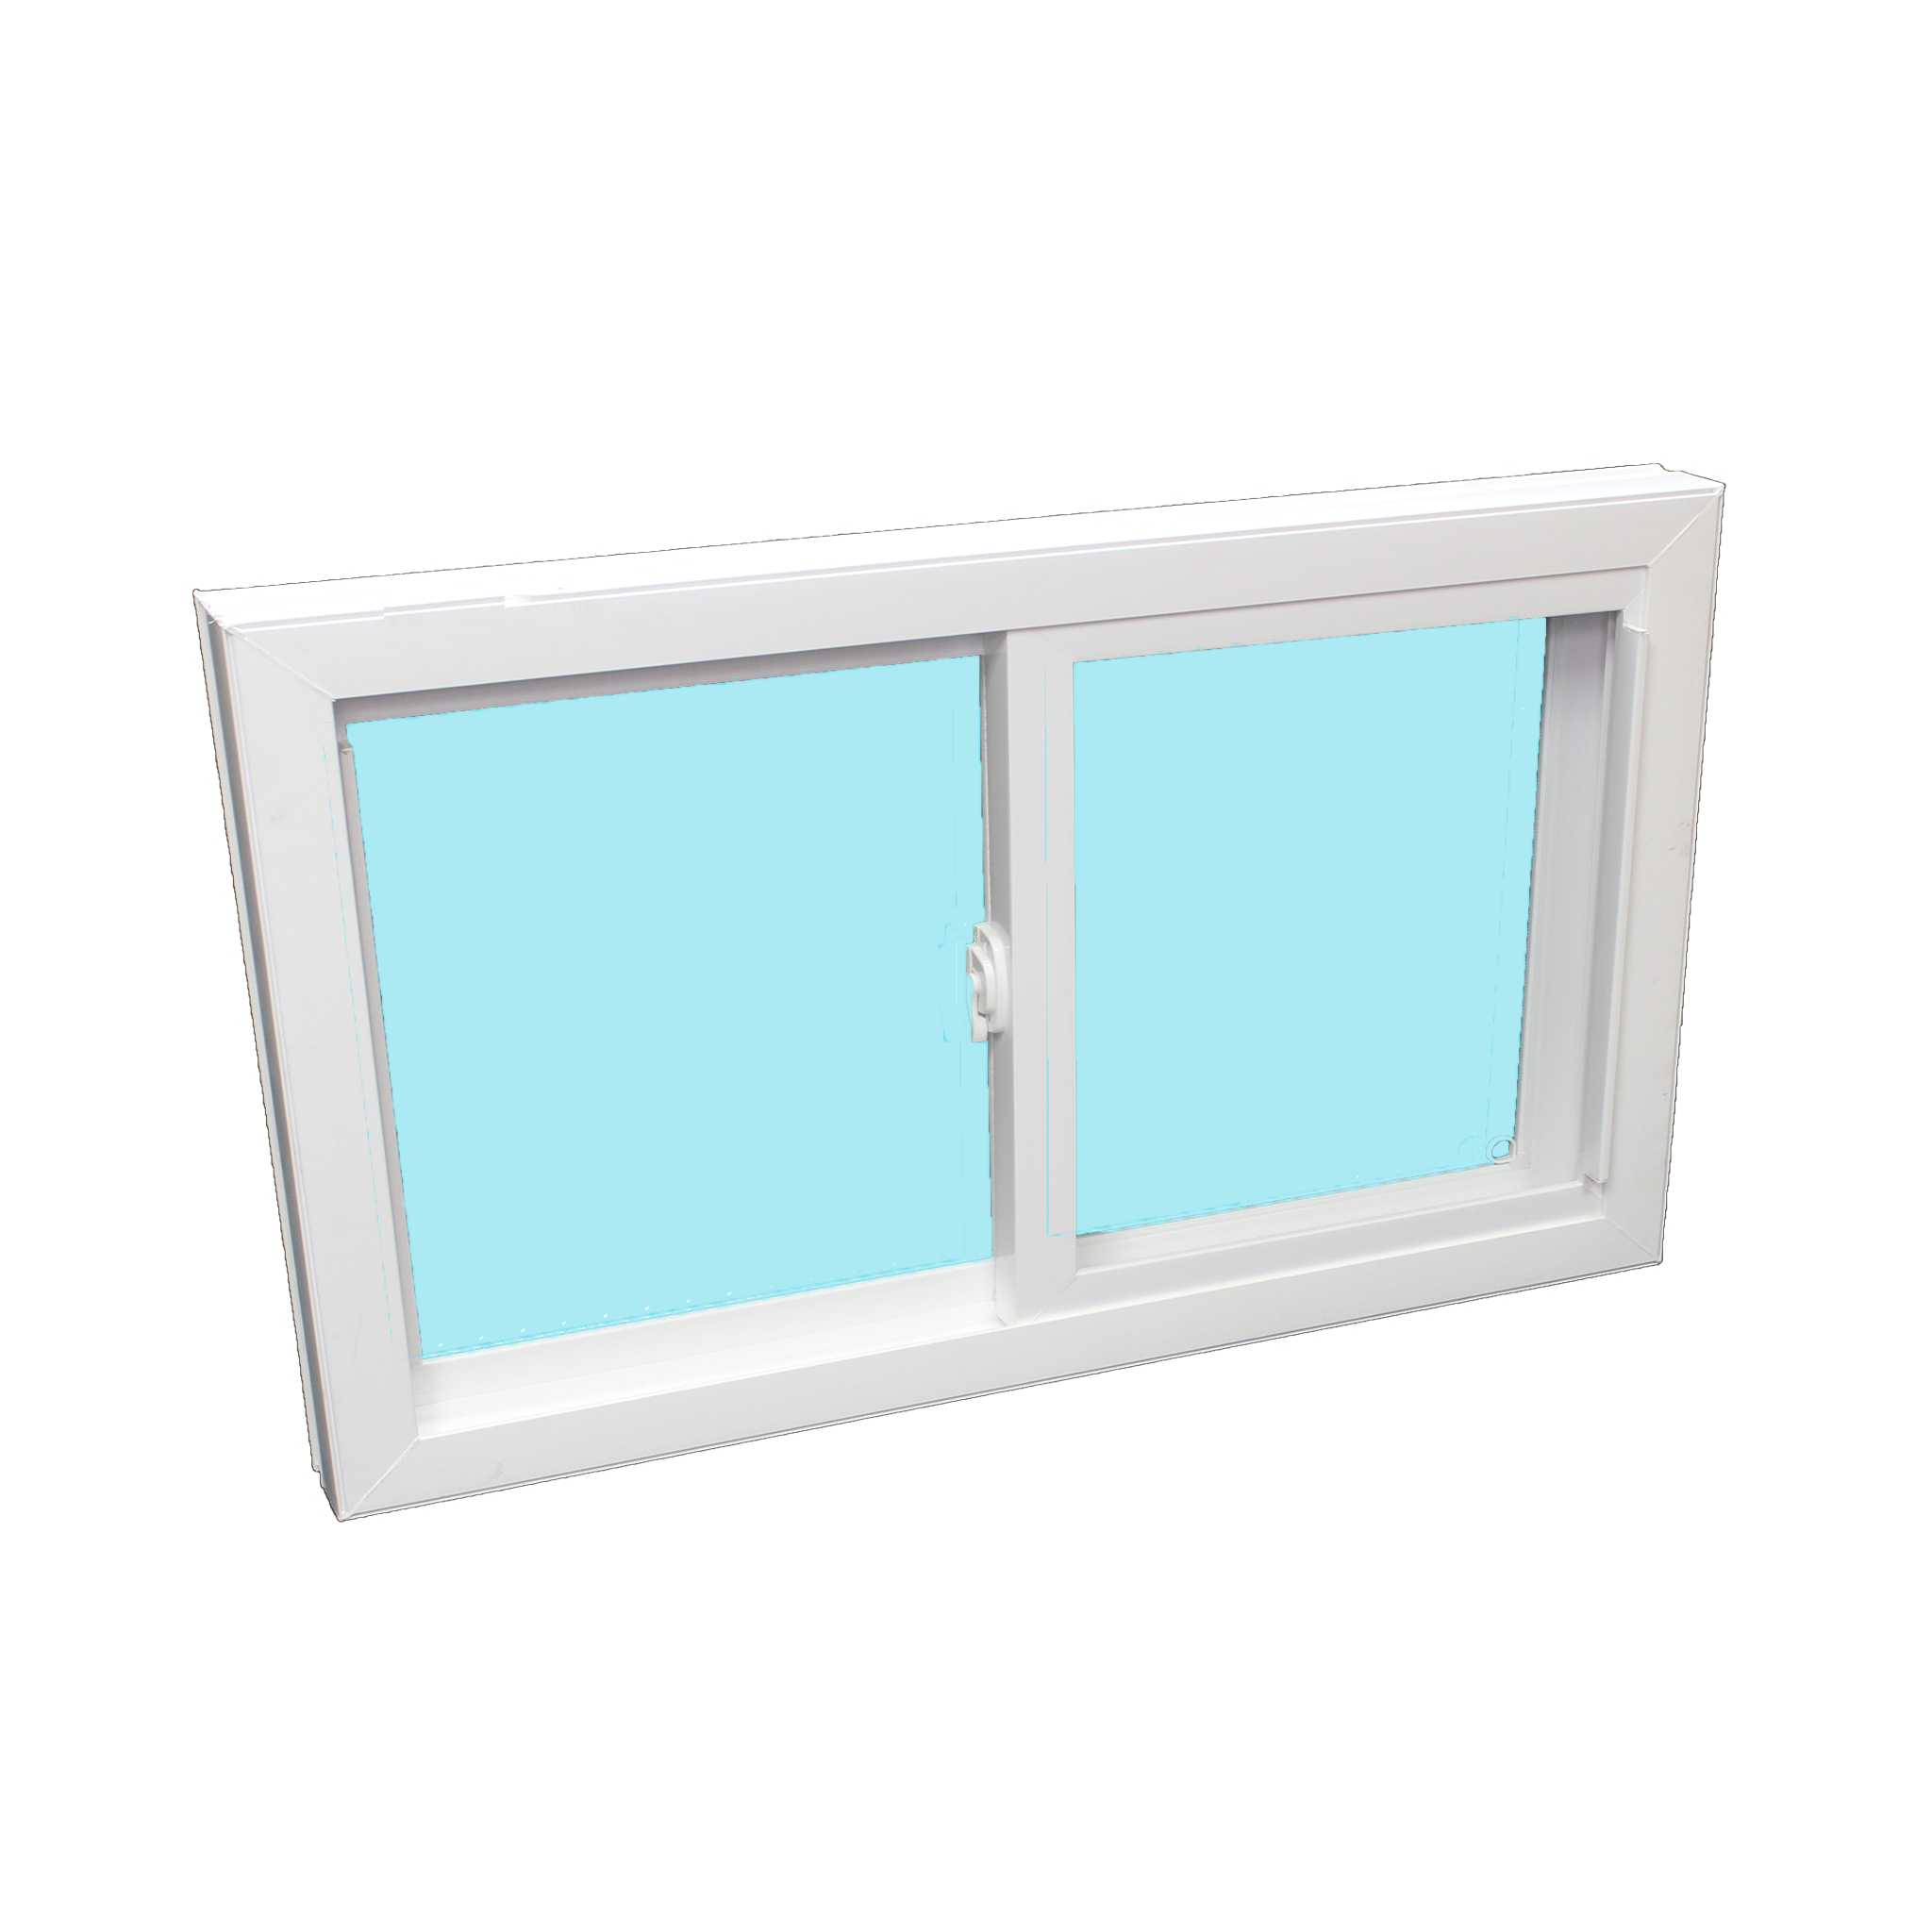 SL710 – REPLACEMENT SLIDER WELDED FRAME & SASH Image